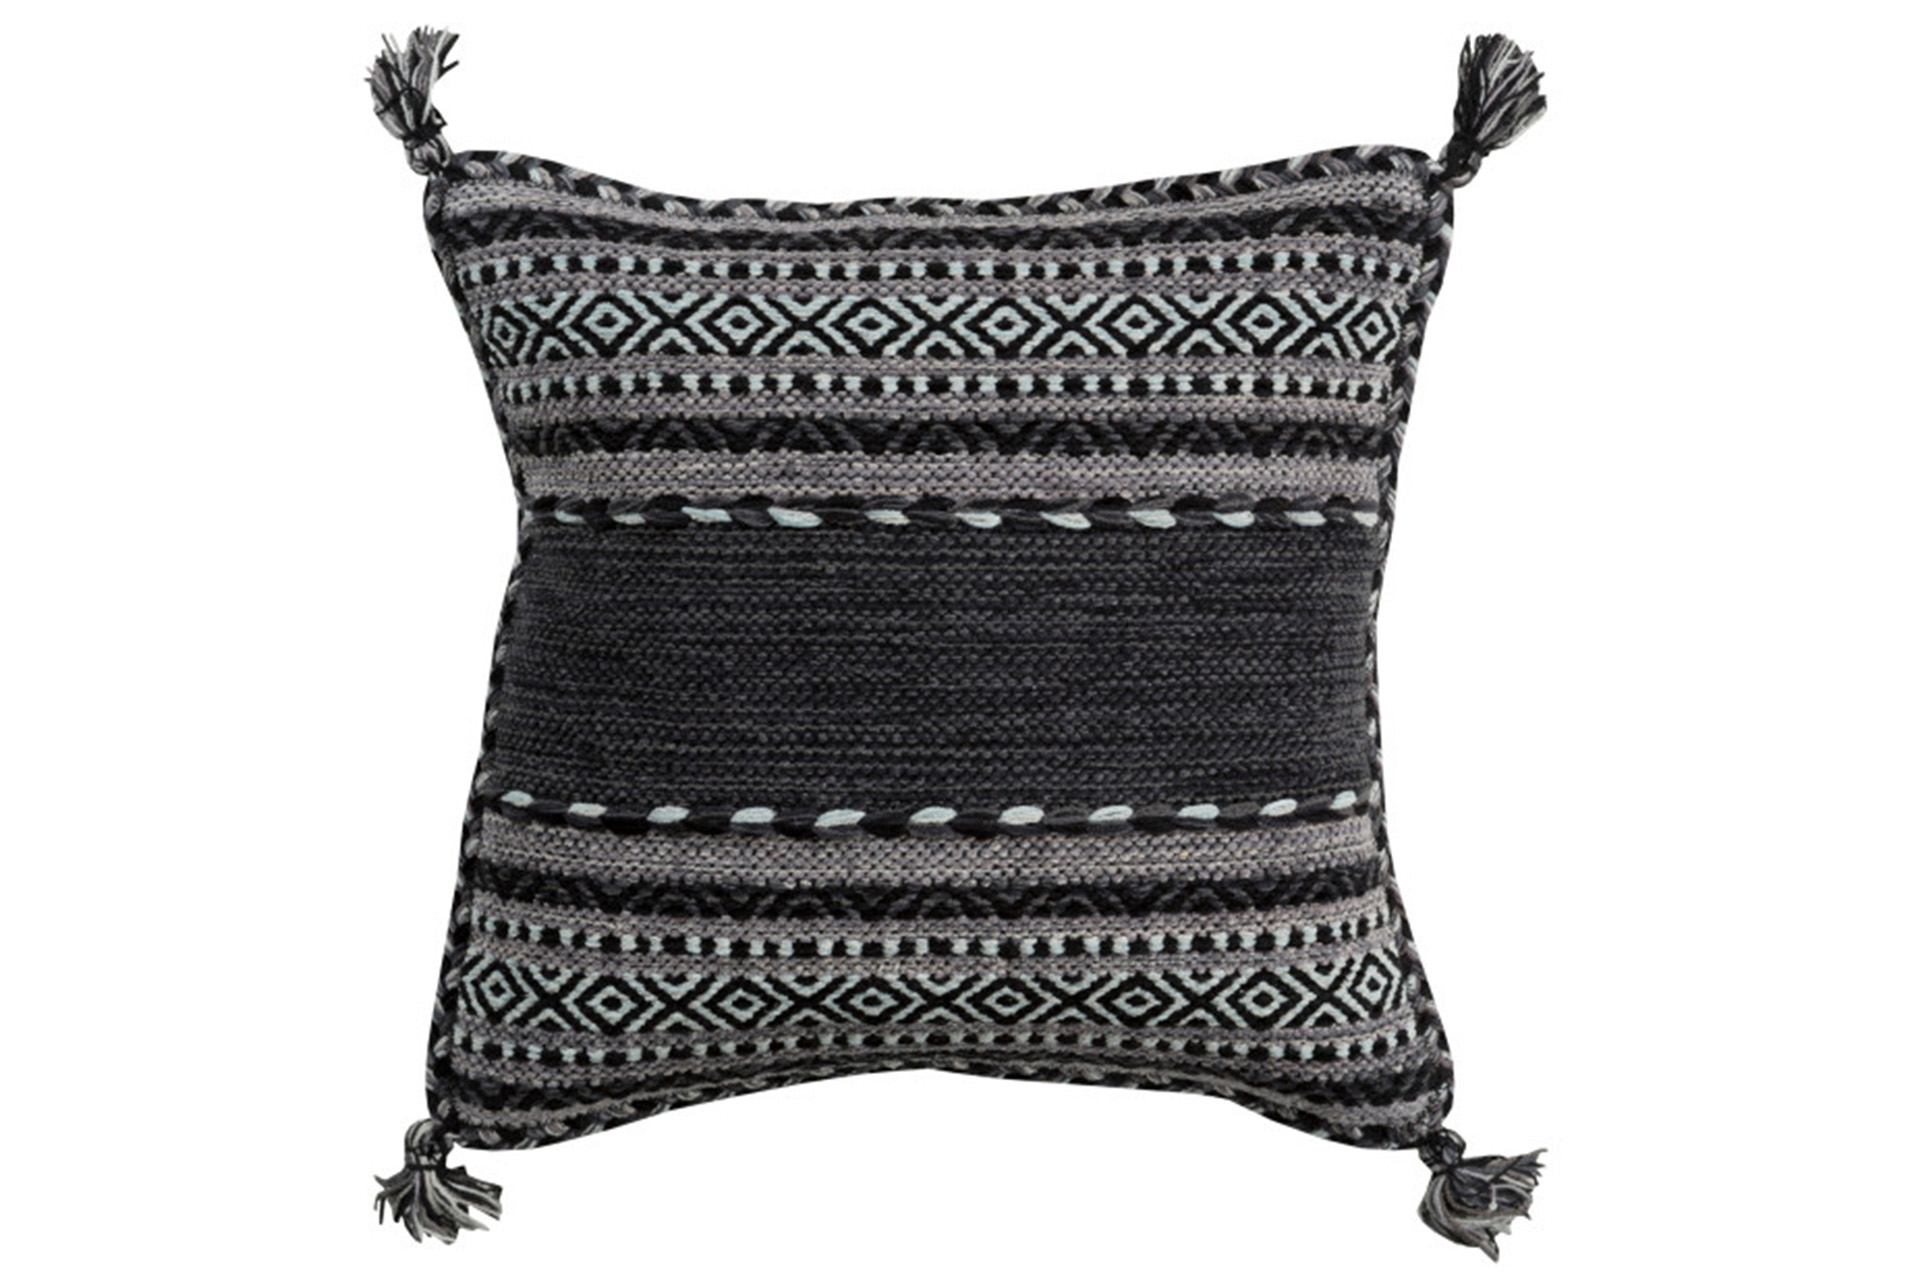 Accent Pillow Black Tassels 18X18 (Qty: 1) Has Been Successfully Added To  Your Cart.